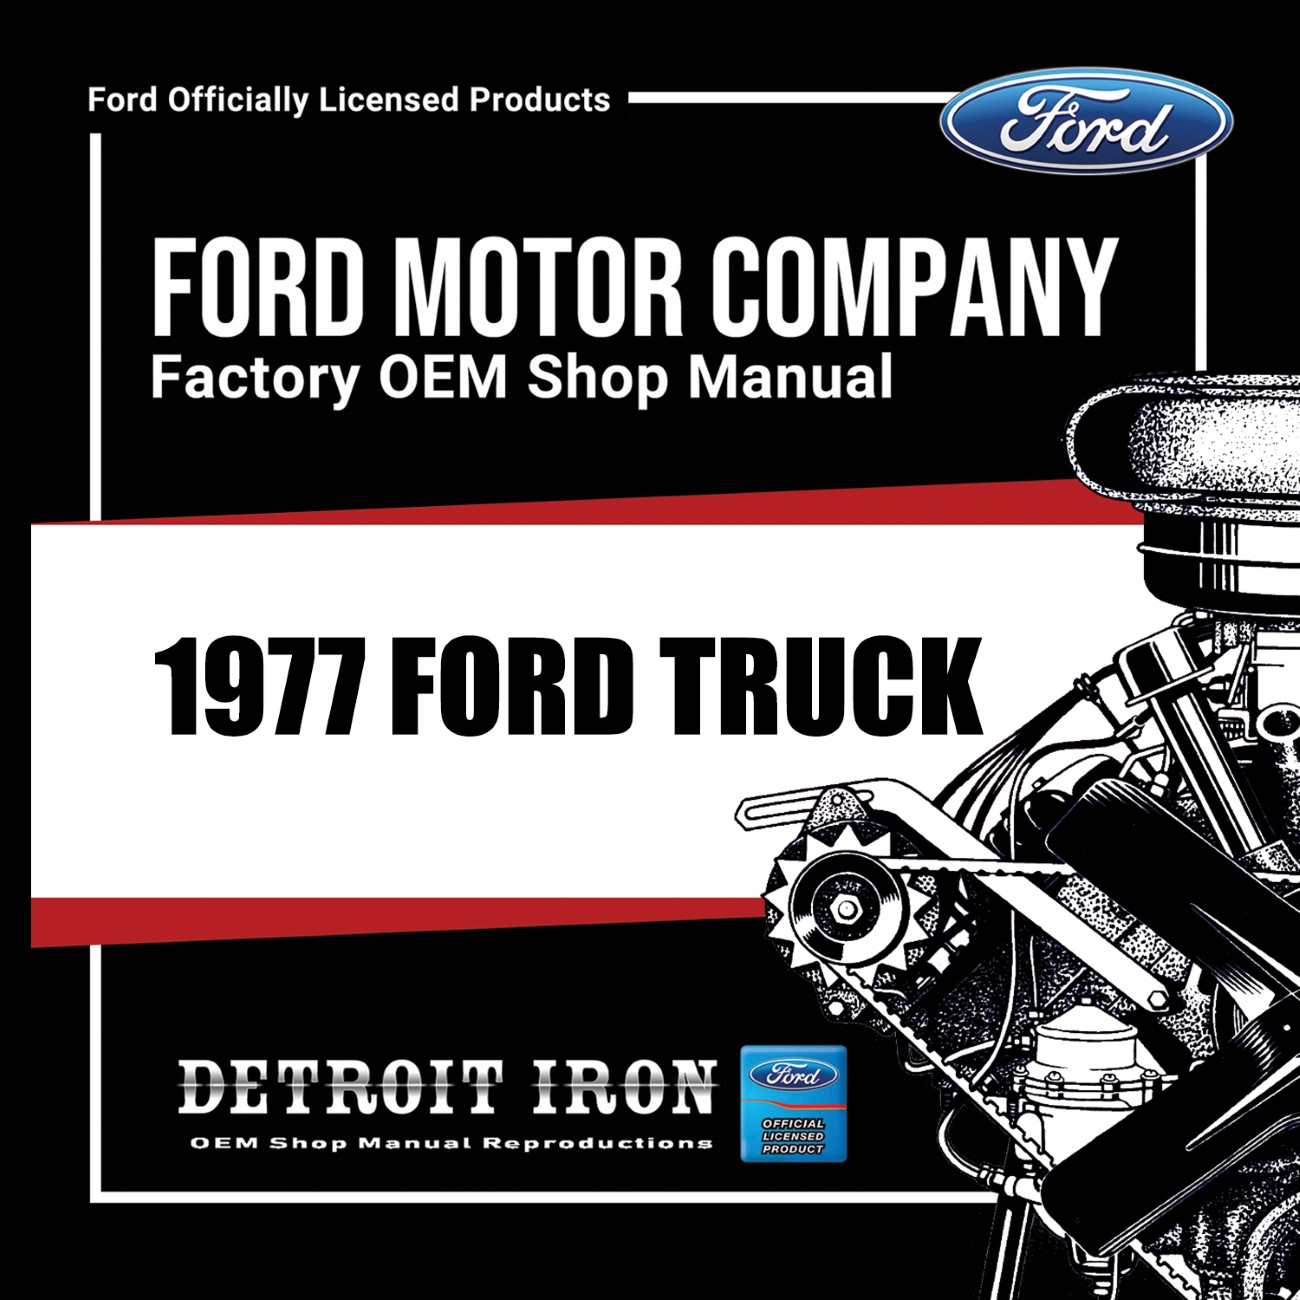 1977 Ford Truck Factory Oem Shop Manuals On Cd Detroit Iron